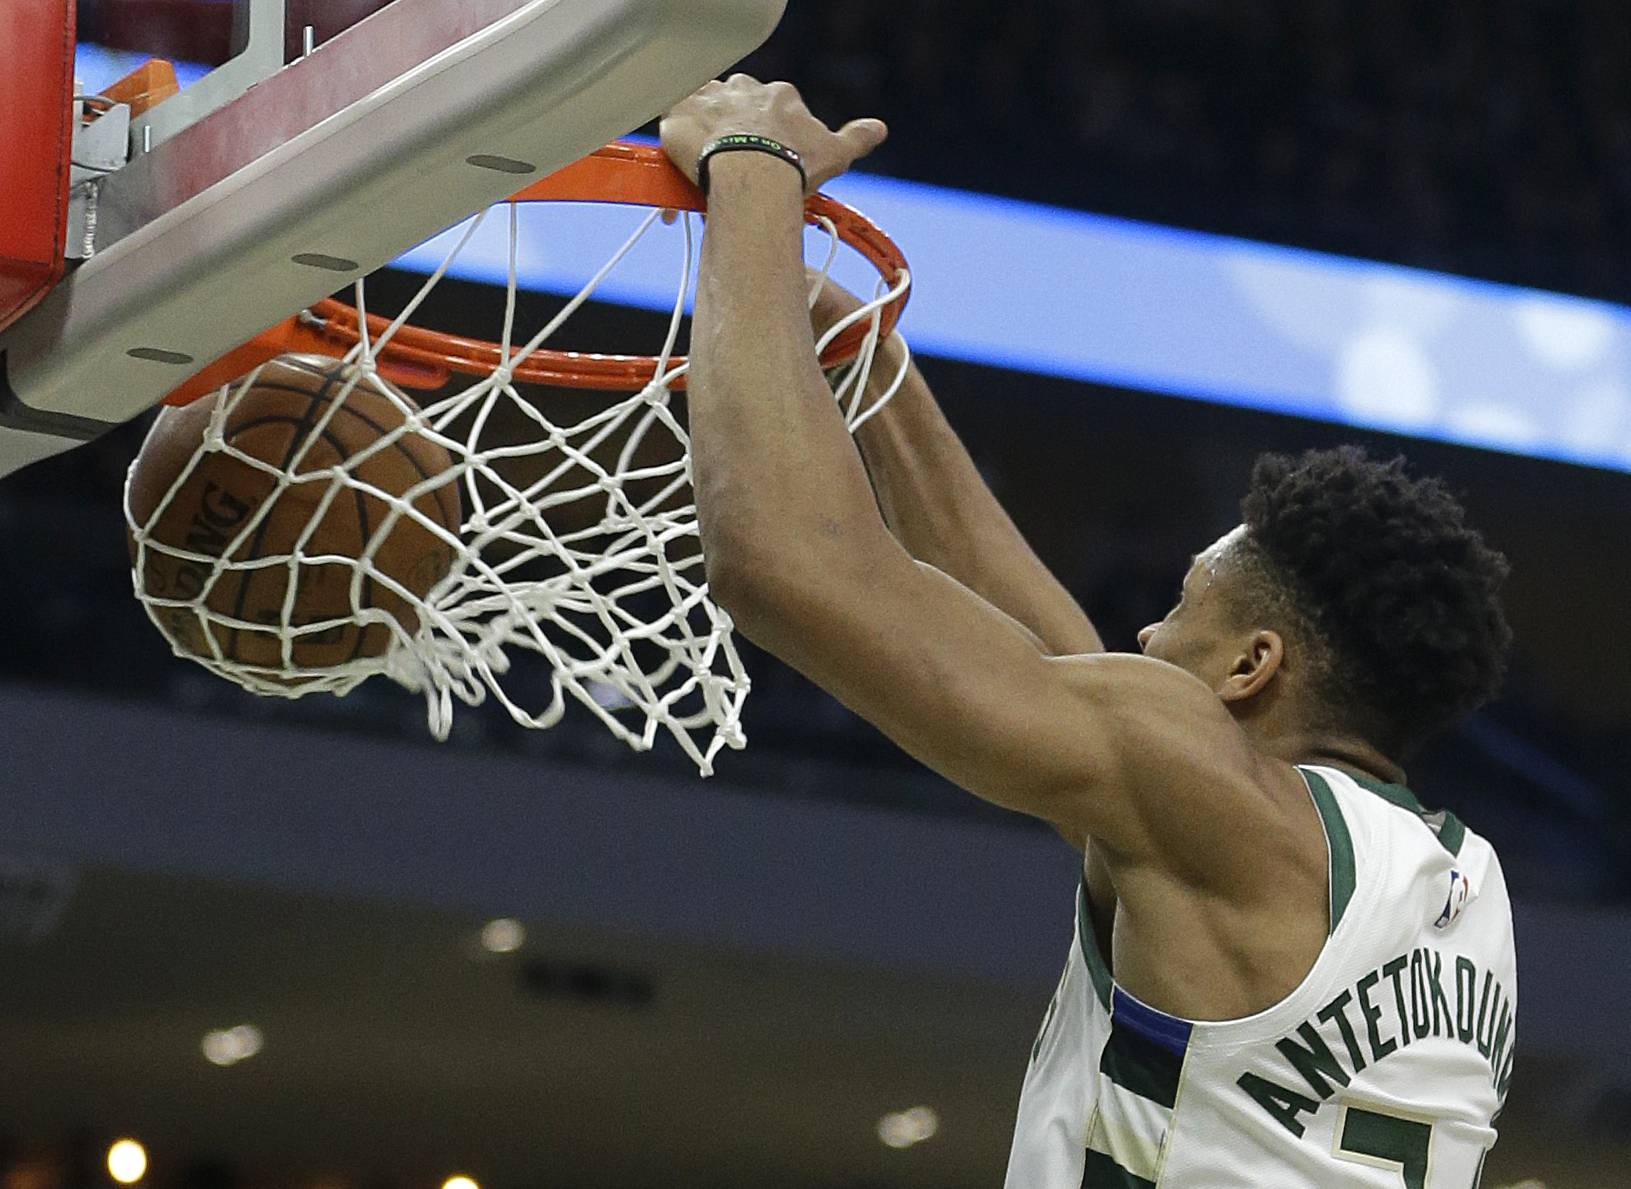 Milwaukee Bucks' Giannis Antetokounmpo dunks during the second half of Game 1 of an NBA basketball first-round playoff series against the Detroit Pistons Sunday in Milwaukee. Antetokounmpo, became the first player to average at least 27 points, 12 rebounds and 5 assists since Kareem Abdul-Jabbar in 1975-76, and is Mike McGraw's pick for MVP.